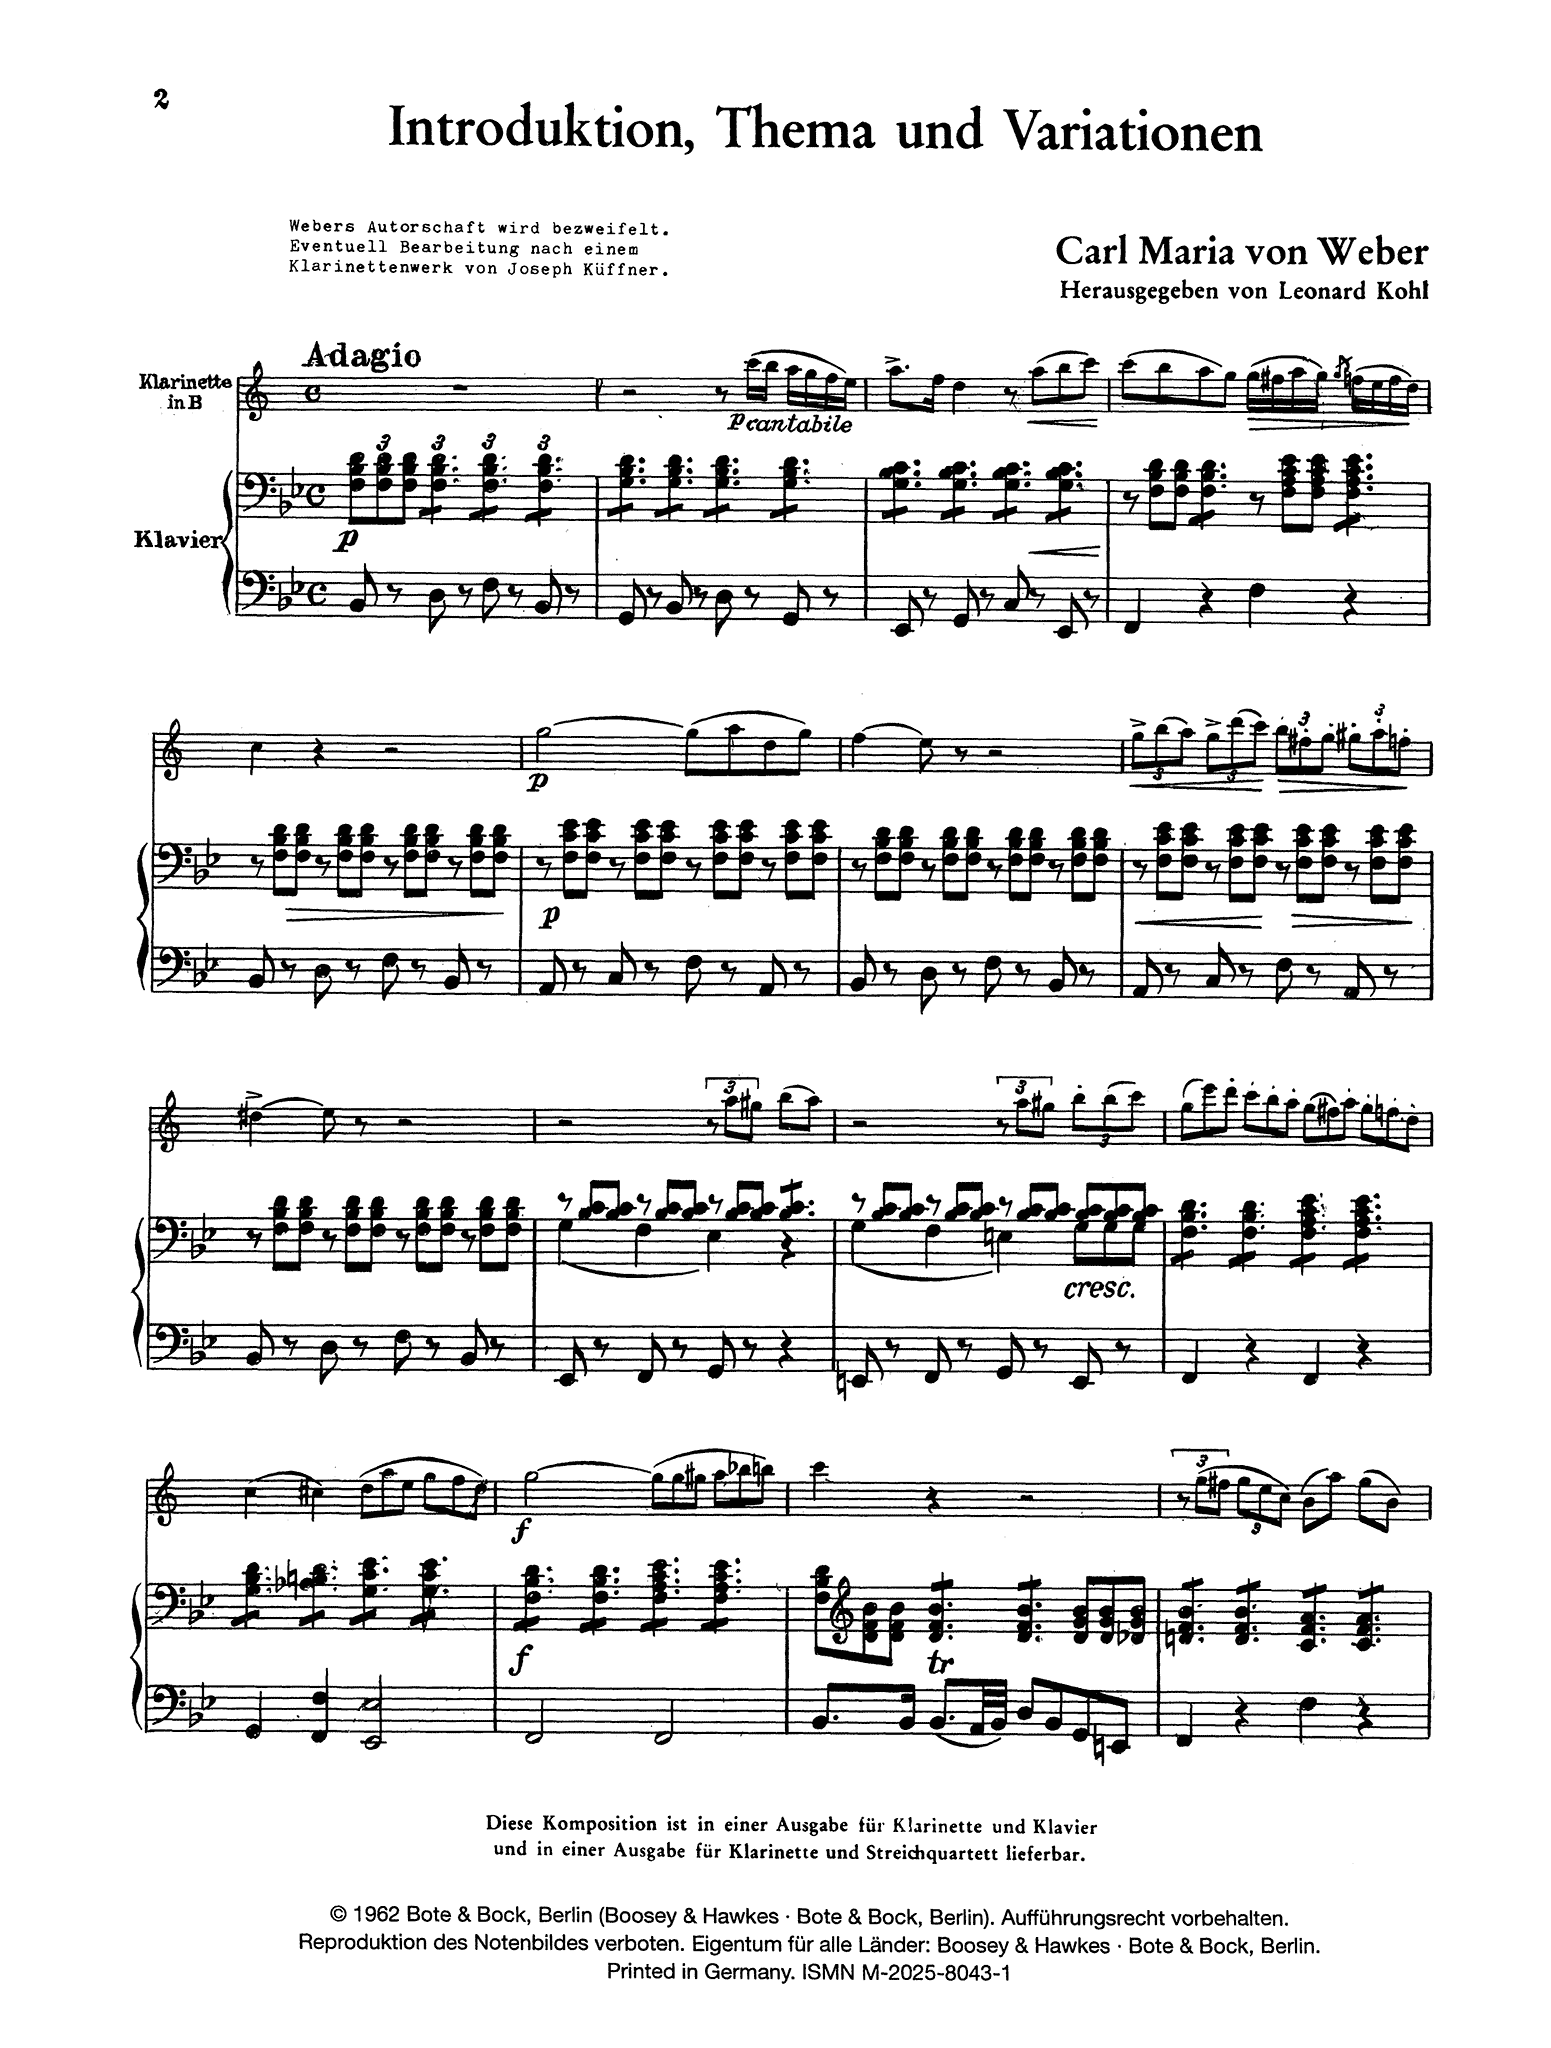 Introduction, Theme & Variations, Op. 32 Score